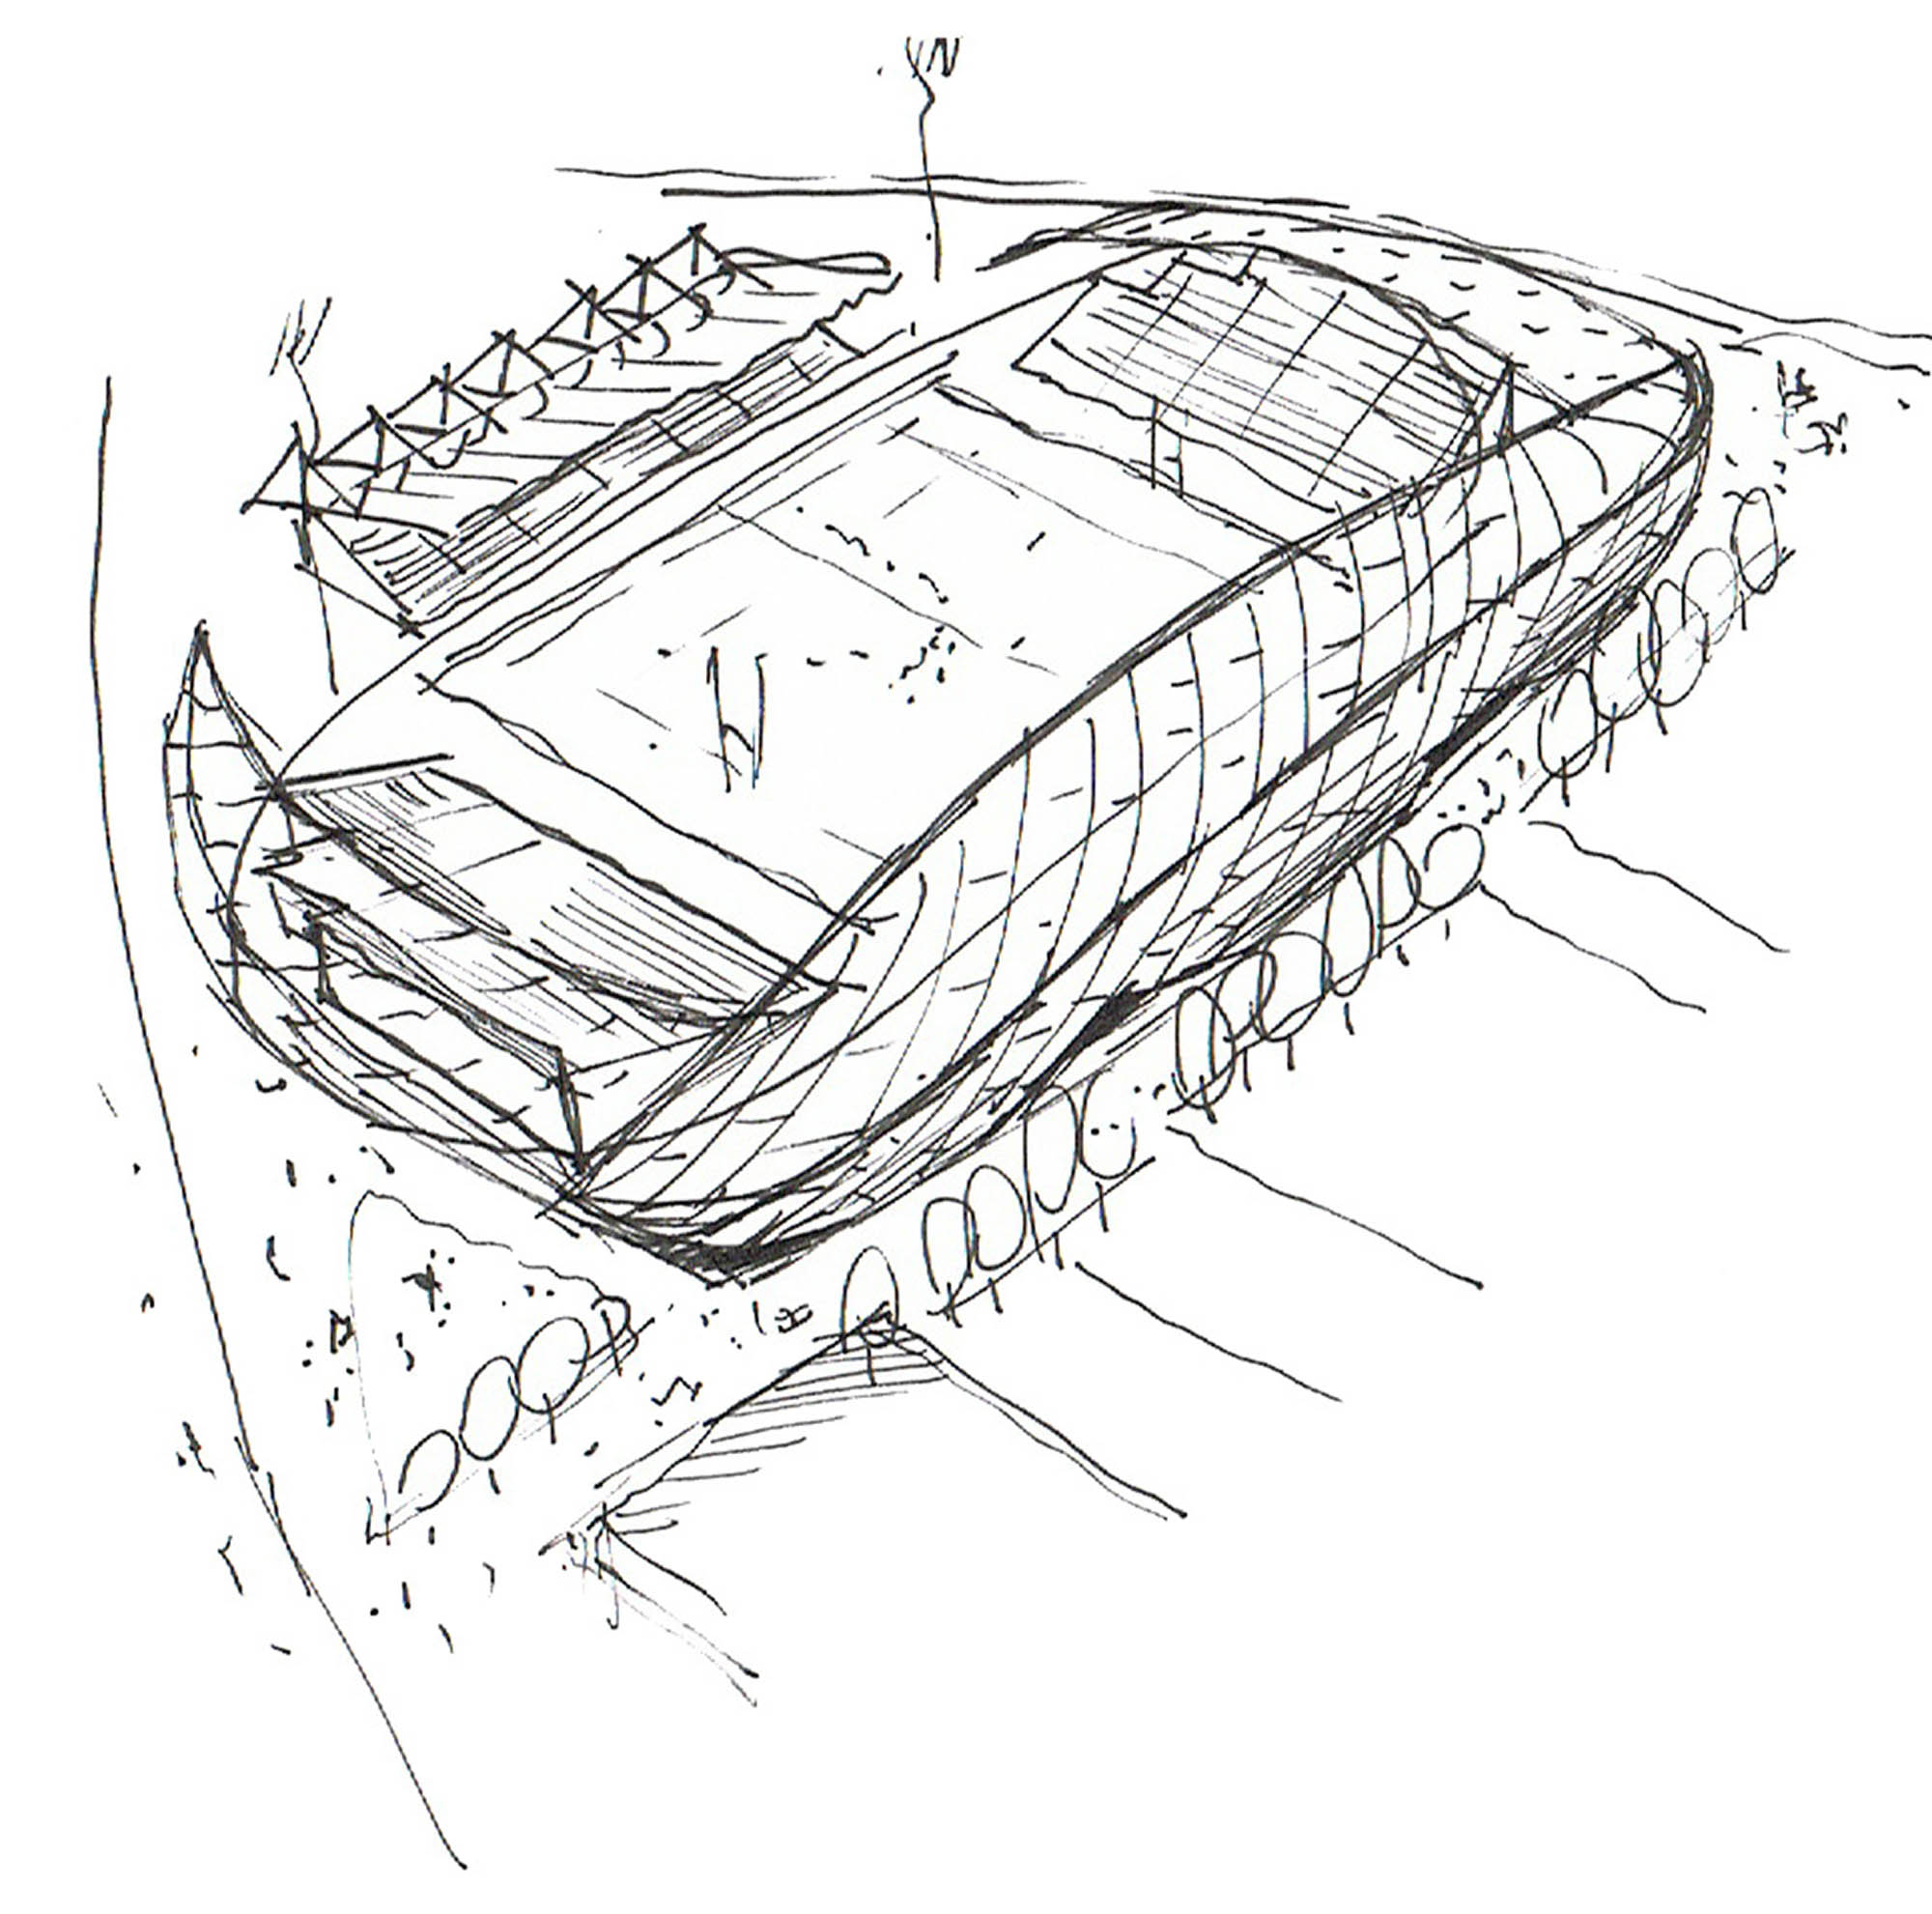 RDS arena architect's sketch for design proposal competition